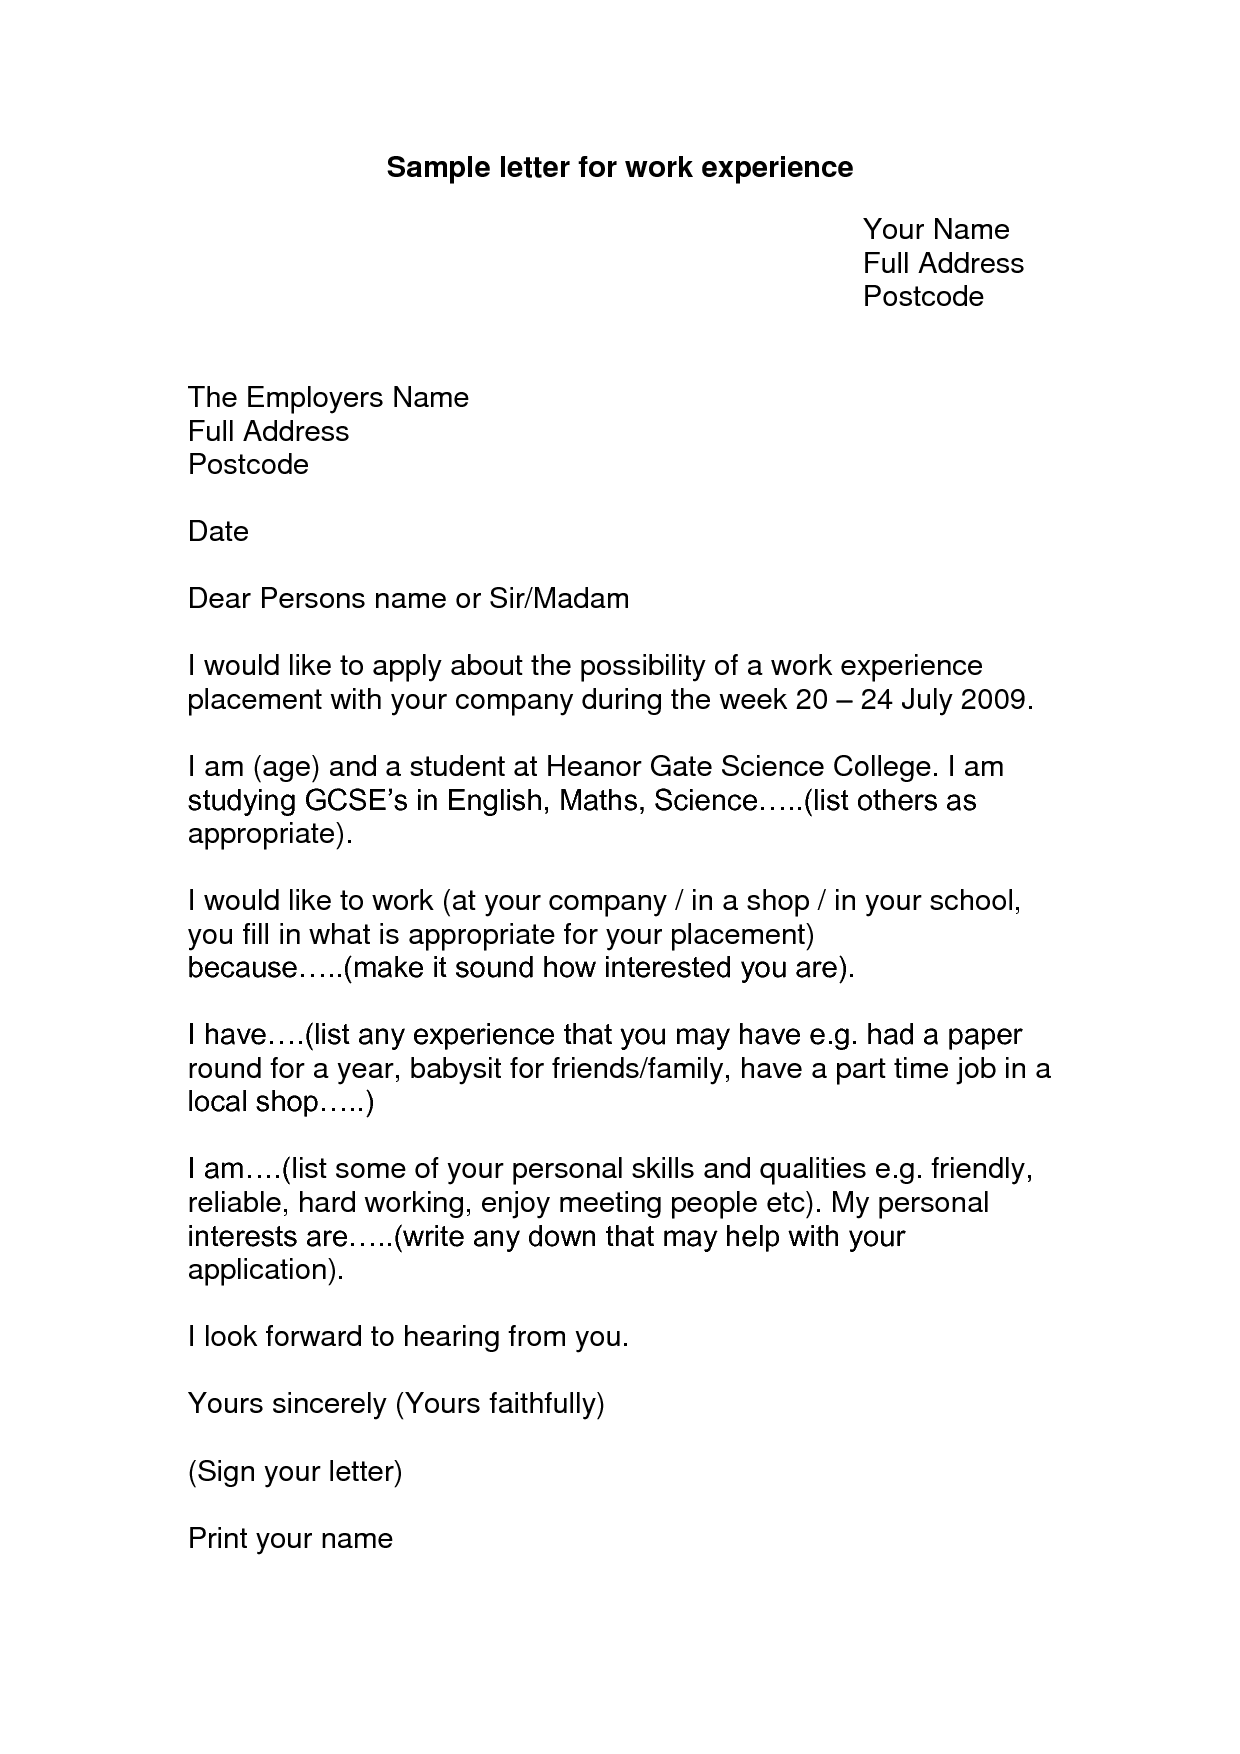 job search letter sample